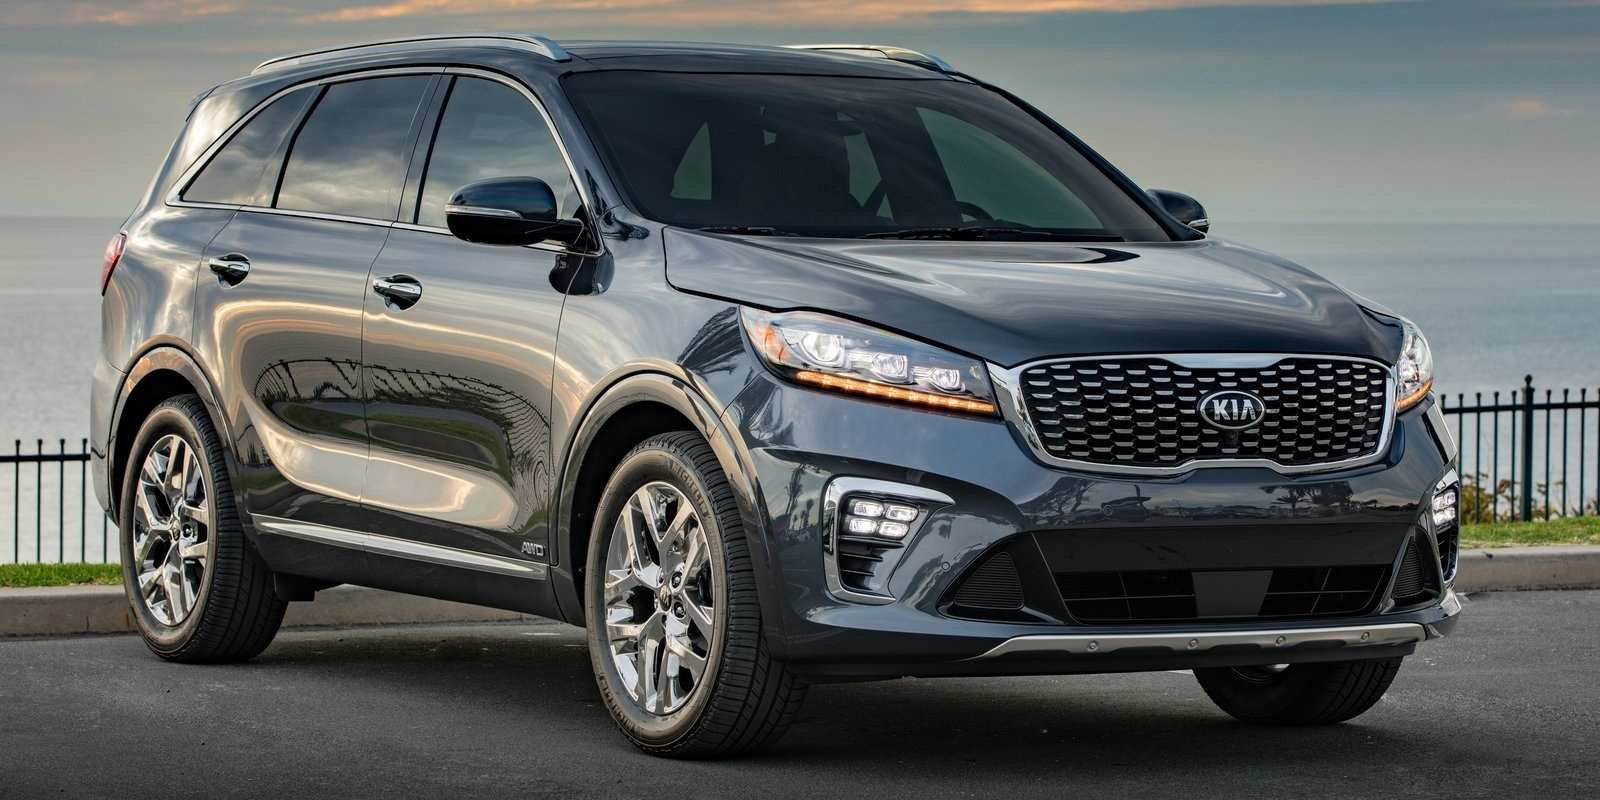 62 Best Review 2020 The All Kia Sedona Performance and New Engine for 2020 The All Kia Sedona